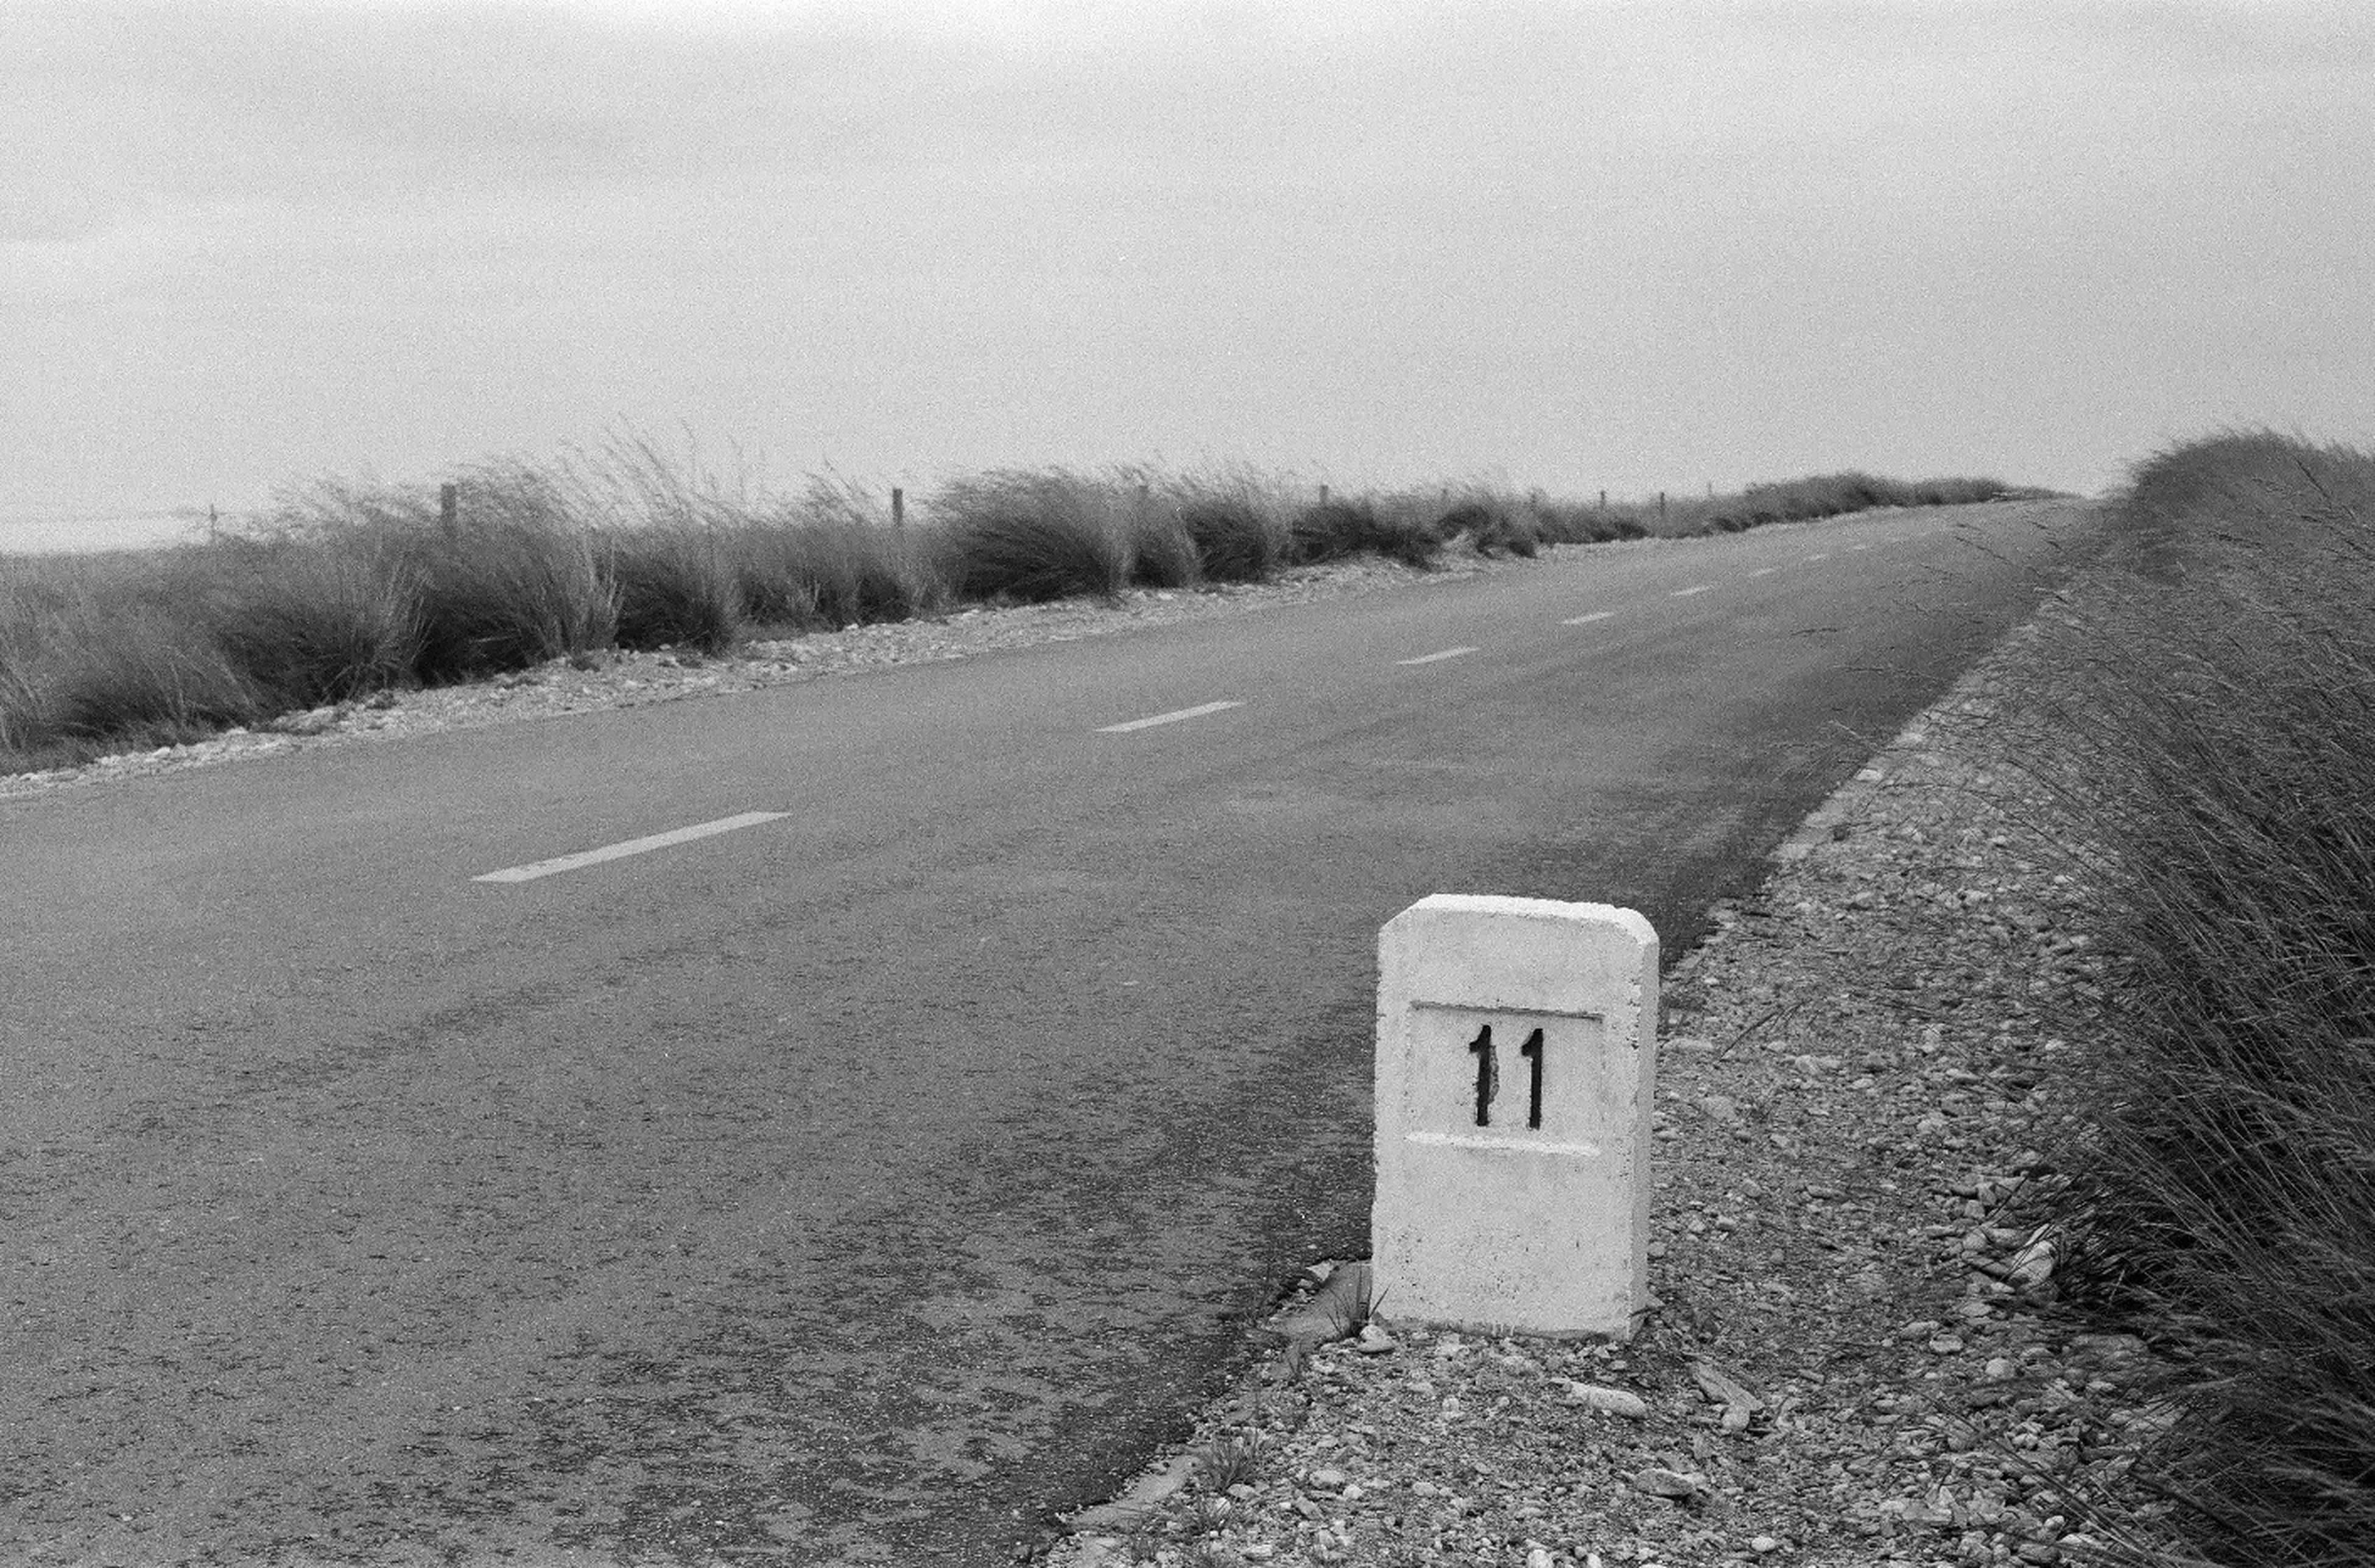 the way forward, transportation, road, diminishing perspective, vanishing point, empty road, road marking, sky, country road, landscape, asphalt, clear sky, field, street, surface level, day, copy space, empty, tranquility